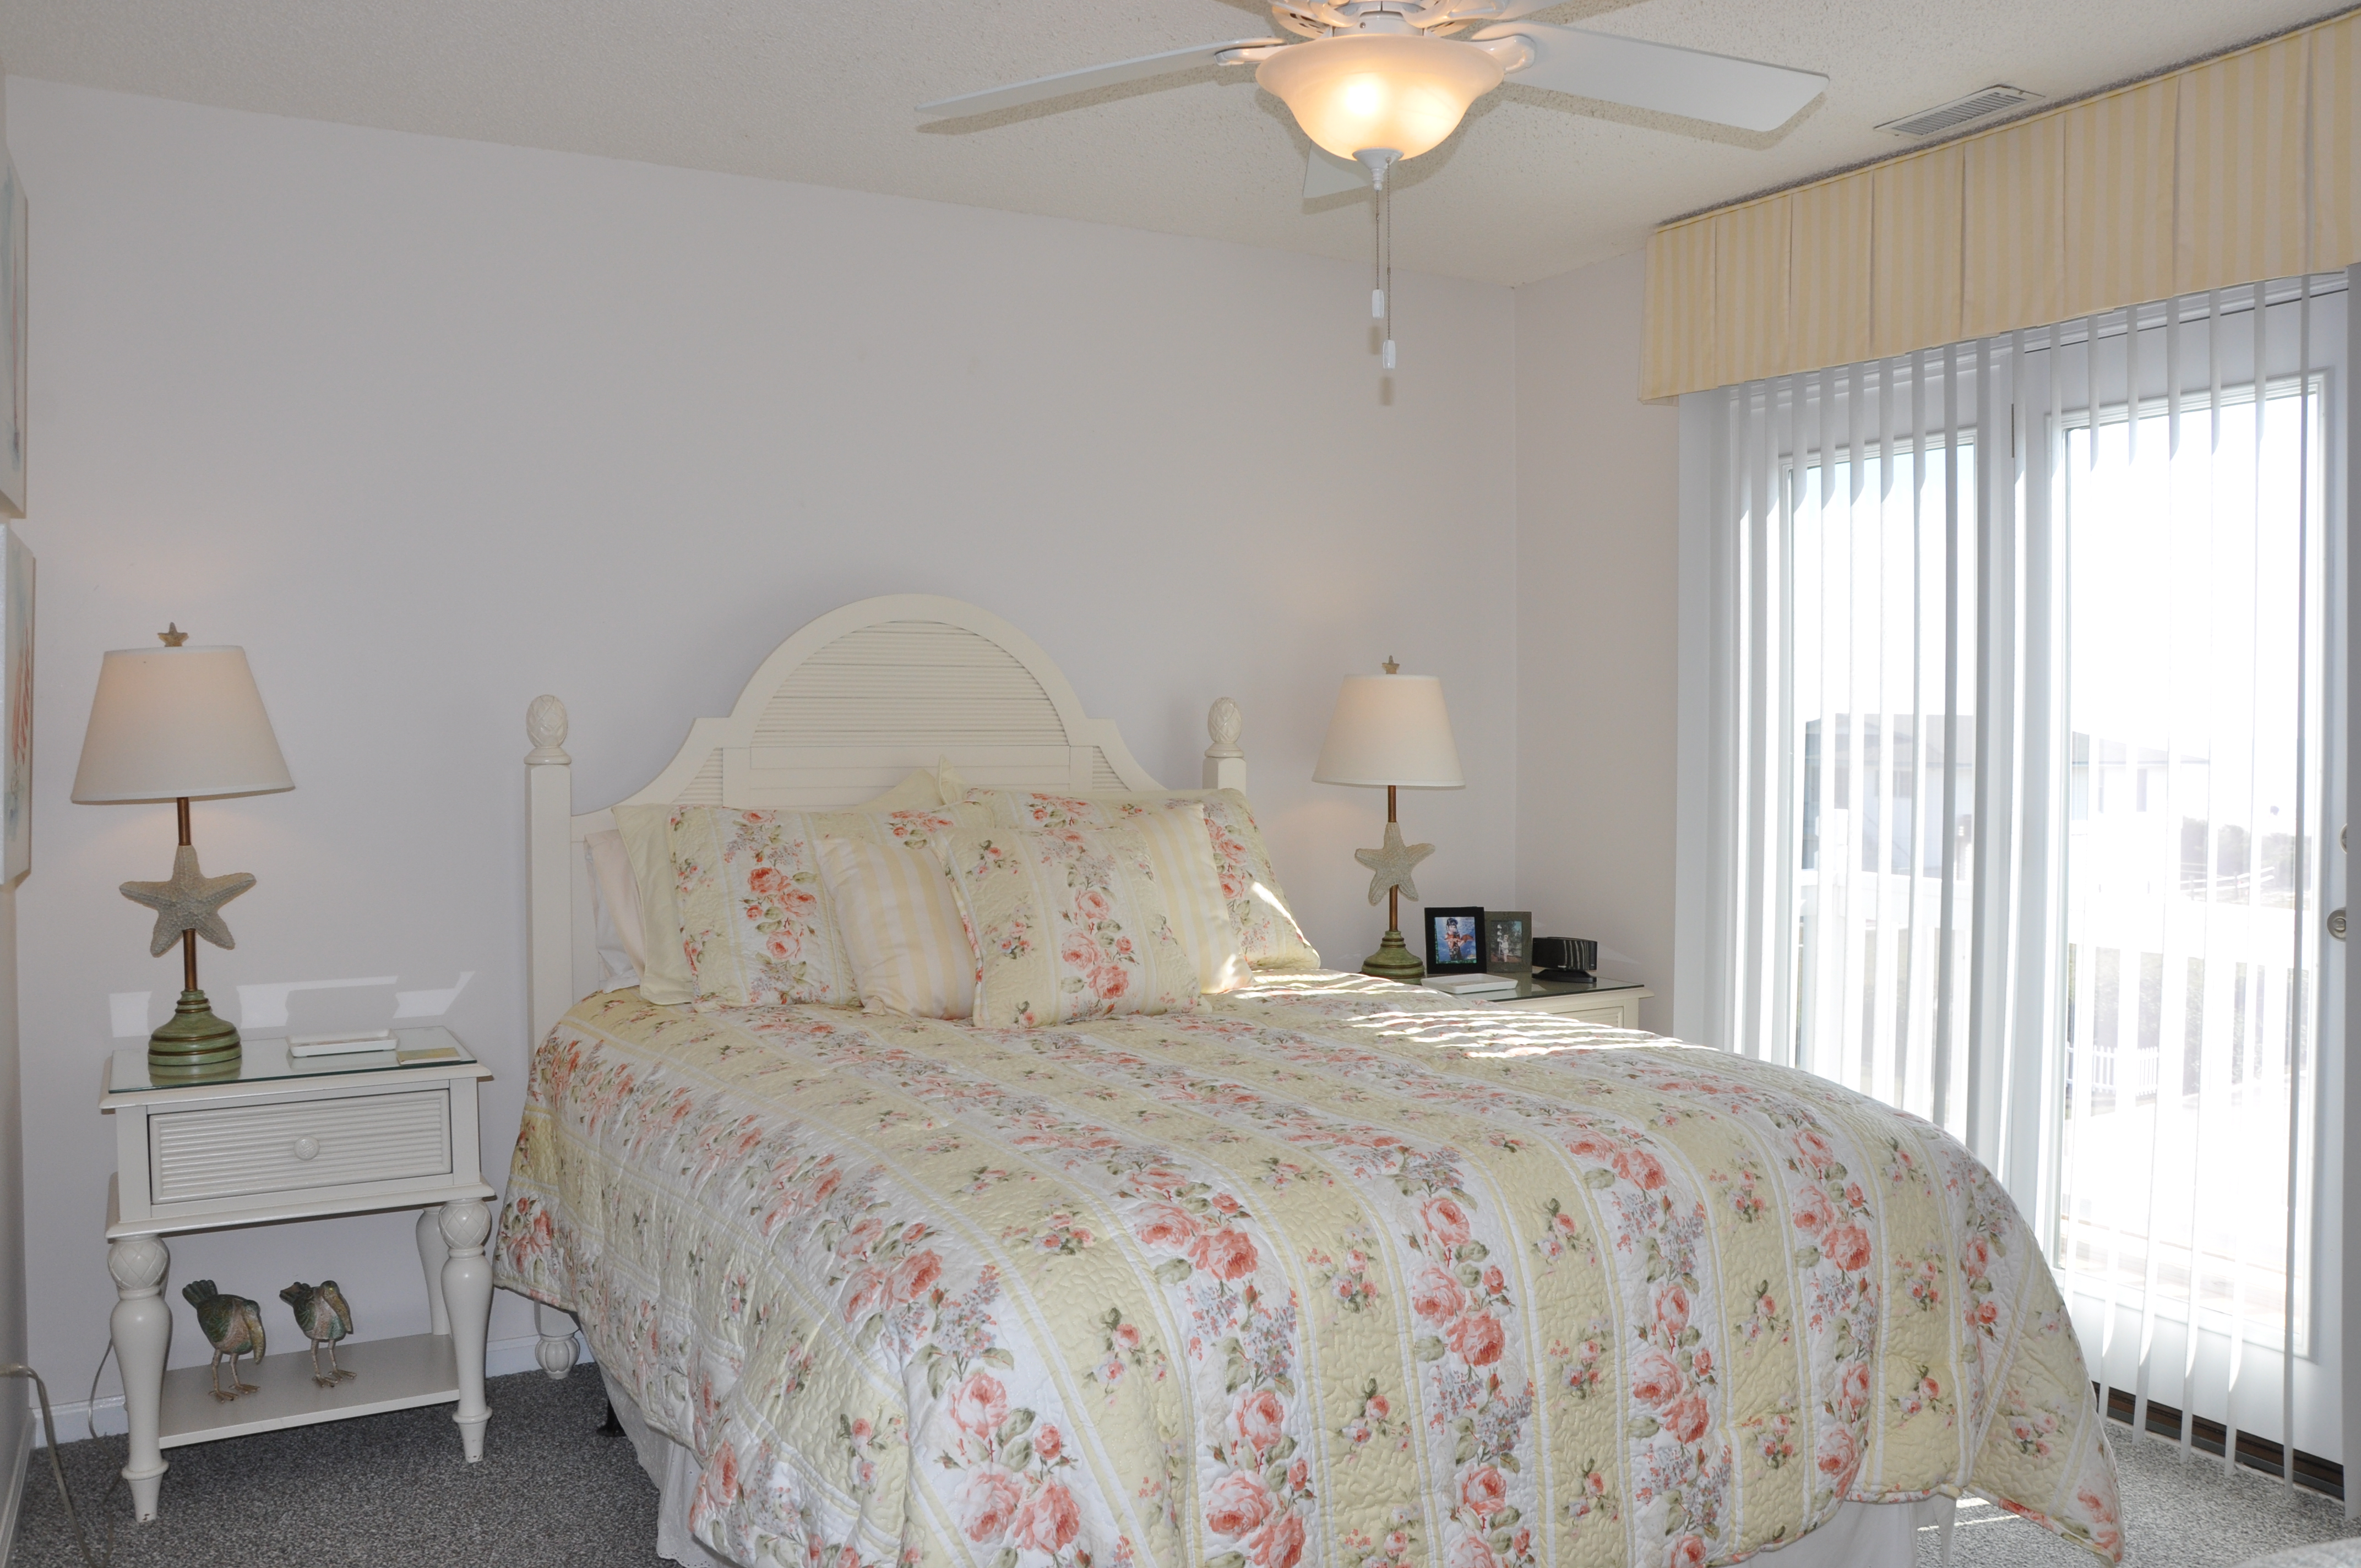 422W - TERRY'S PLACE | Photo